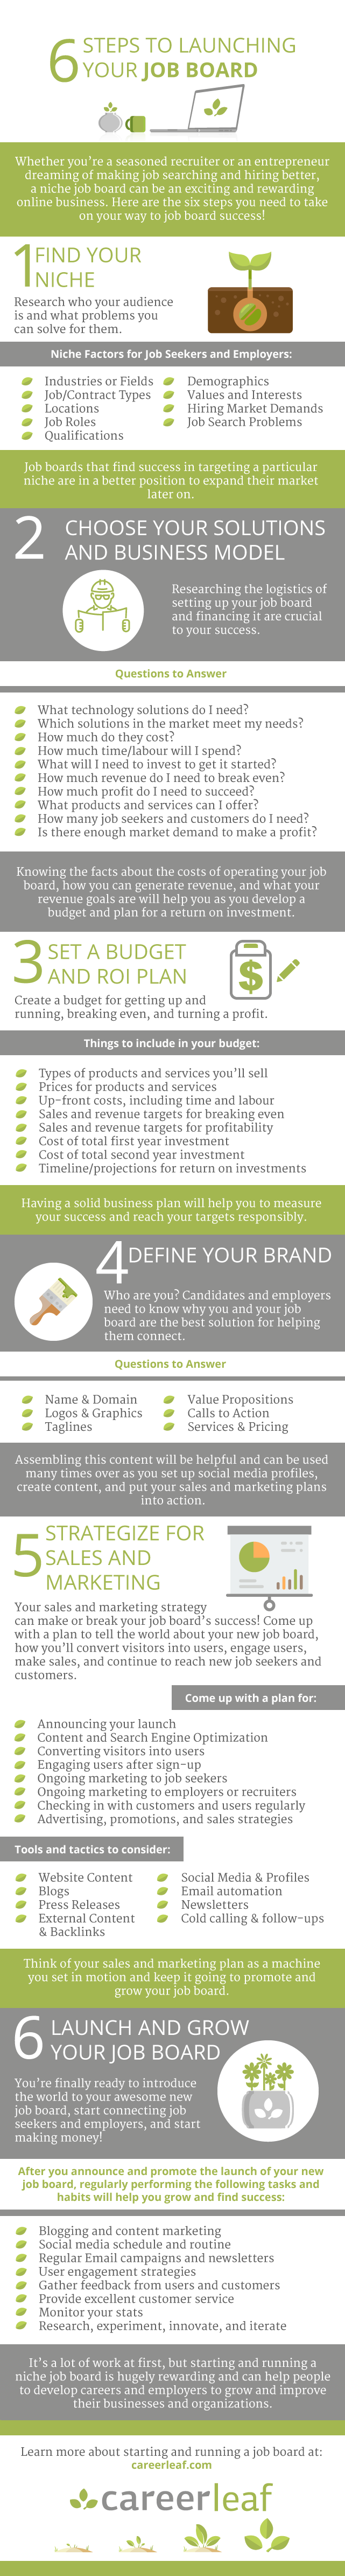 6 Steps to Launch Your Job Board - Infographic